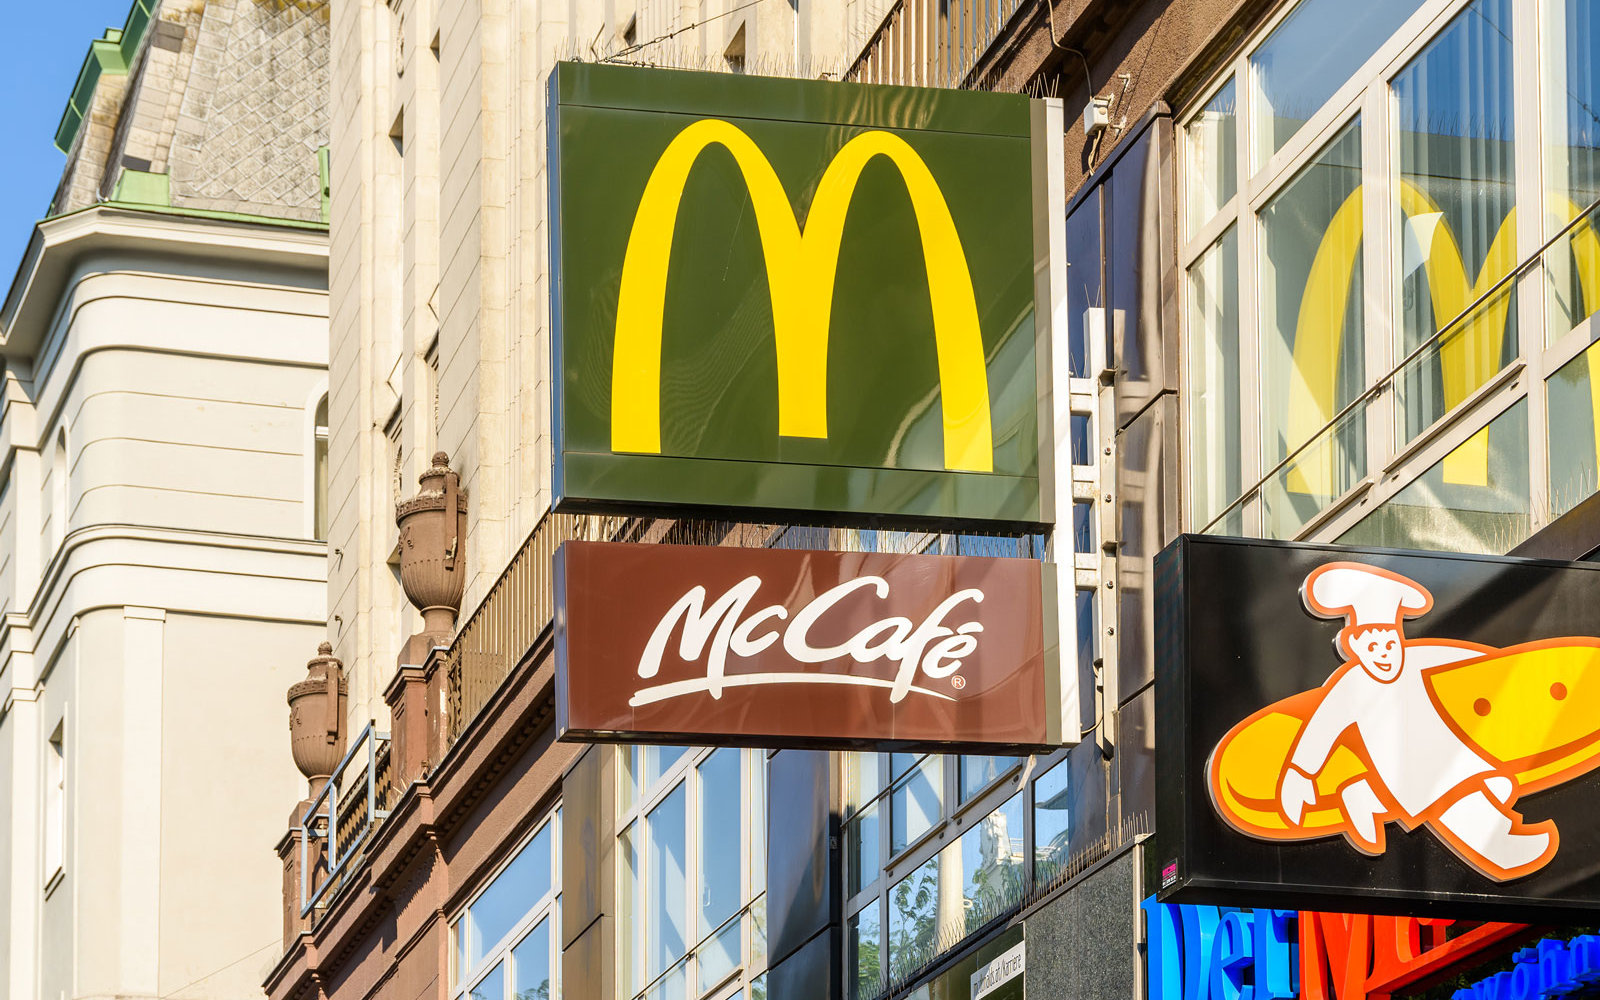 You Can Contact the U.S. Embassy at Any McDonald's in Austria